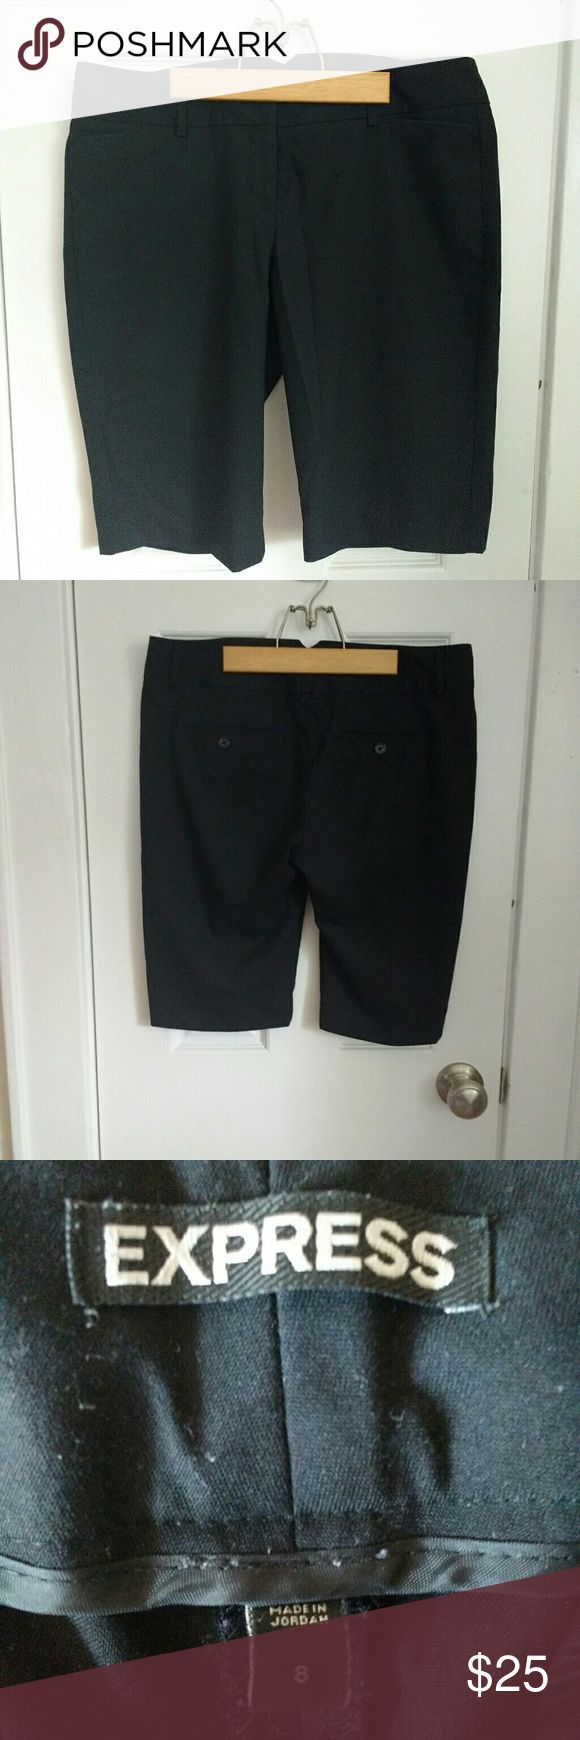 Express bermuda short Black shorts, length to right above the knee (approx 20 inches long) Fit and material are exactly like traditional business slacks - 64% polyester, 34% viscose rayon, 2% elastine. Machine washable. Worn 2 or 3 times, no wear, like new Express Shorts Bermudas